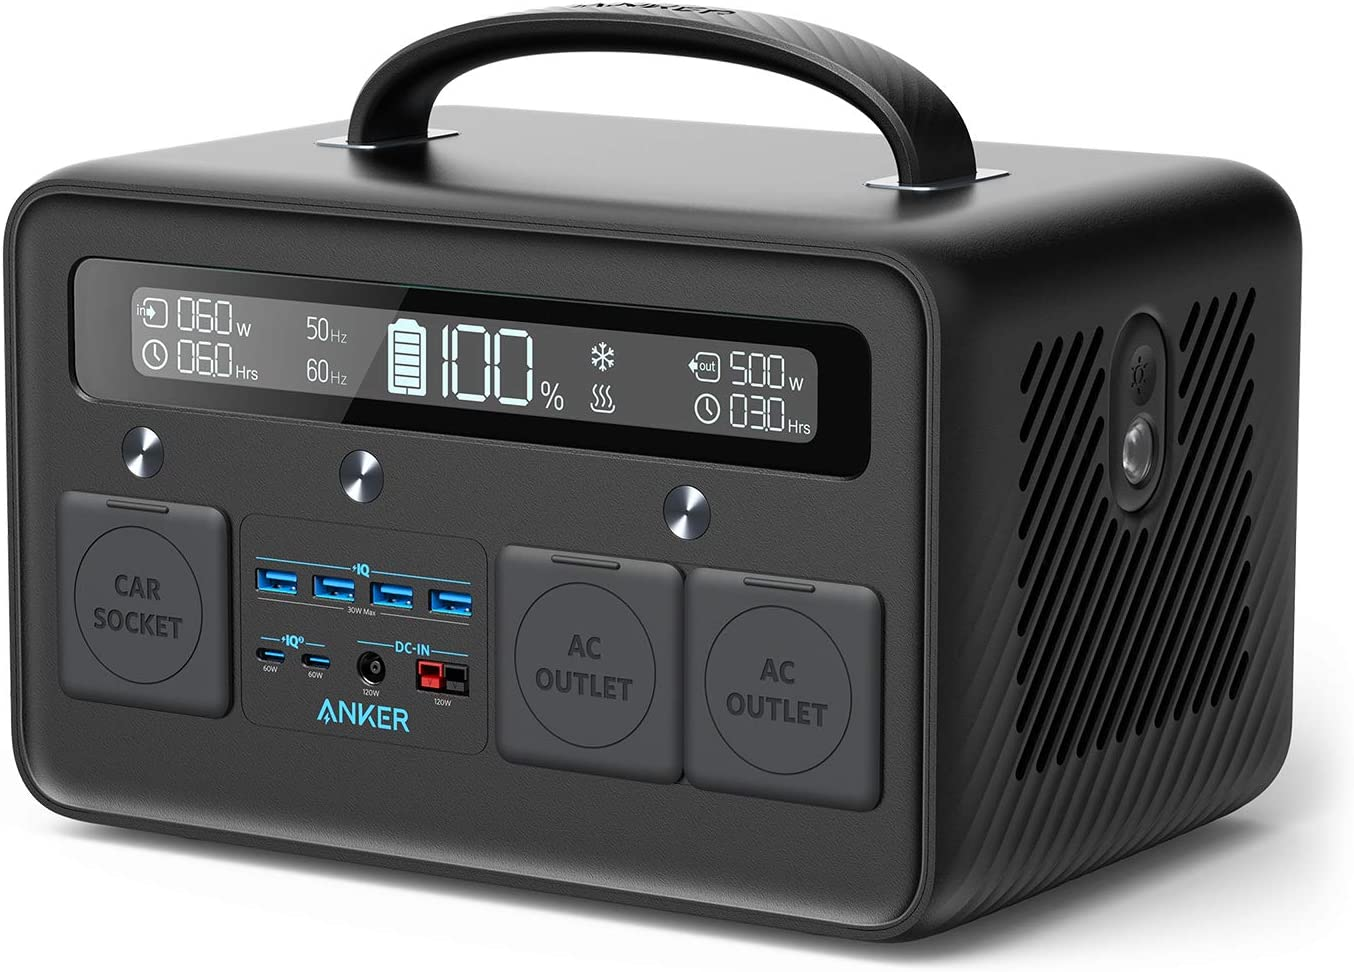 Anker Portable Power Station, PowerHouse II 800, 500W/777Wh Solar Generator with 110V/500W 2-AC Outlets, 2X 60W Power Delivery Outputs & LED Flashlight, for Outdoor RV/Van Camping, Home Emergencies